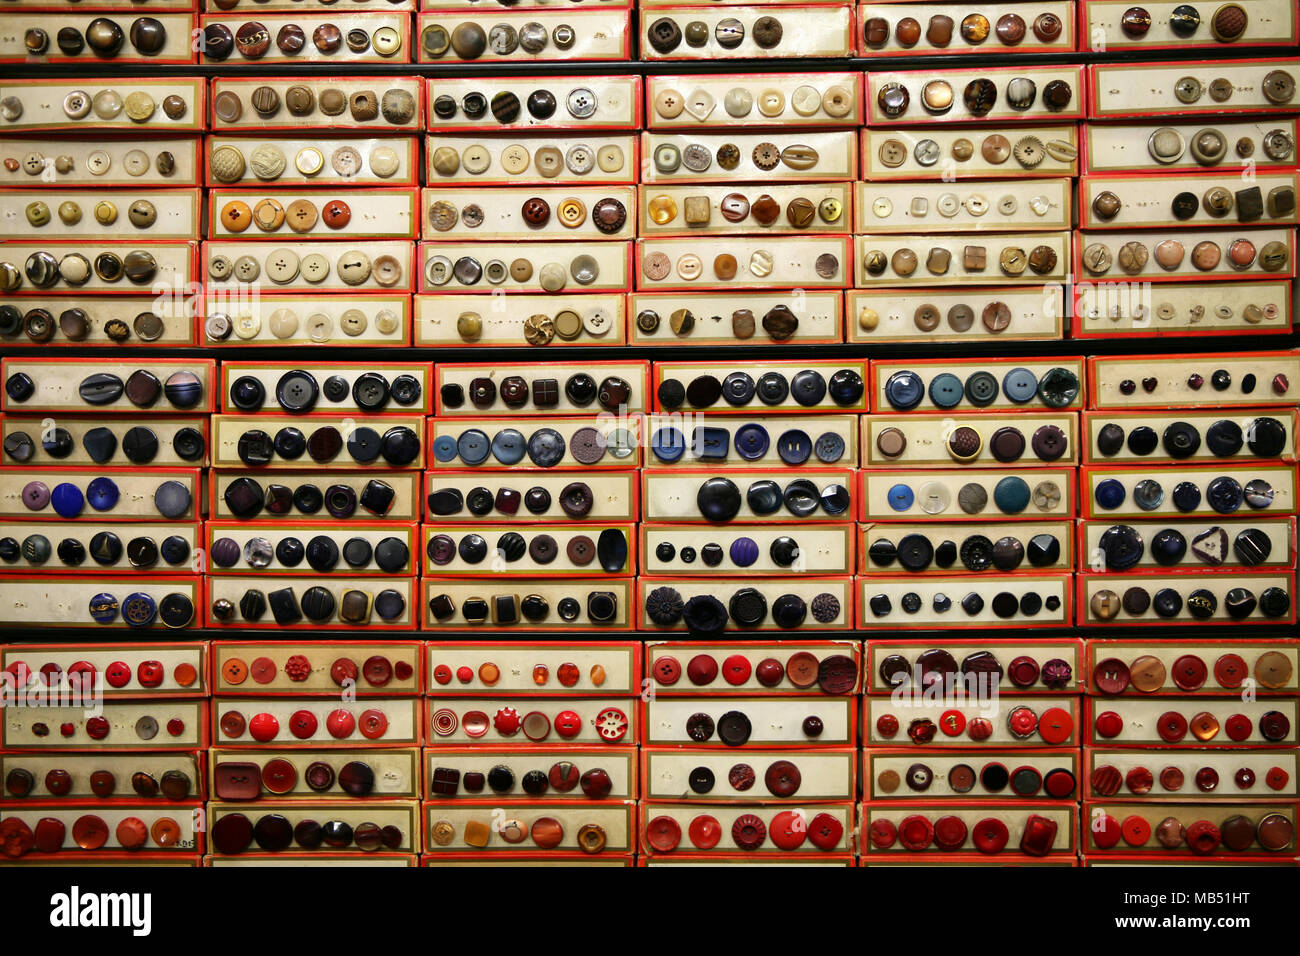 Buttons archive - Stock Image